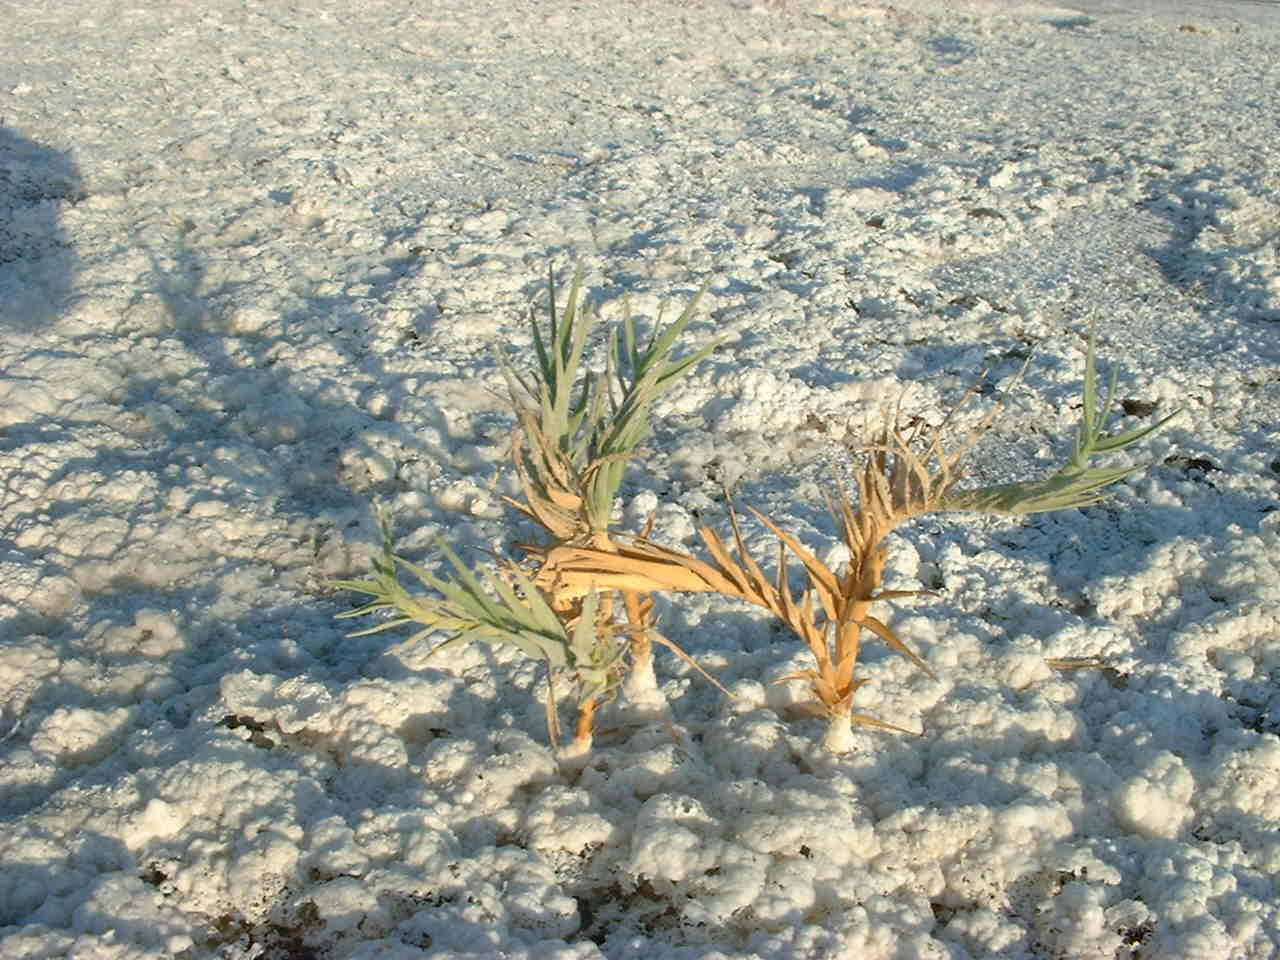 Vegetation surviving in the Badwater Basin Salt Flats of Death Valley